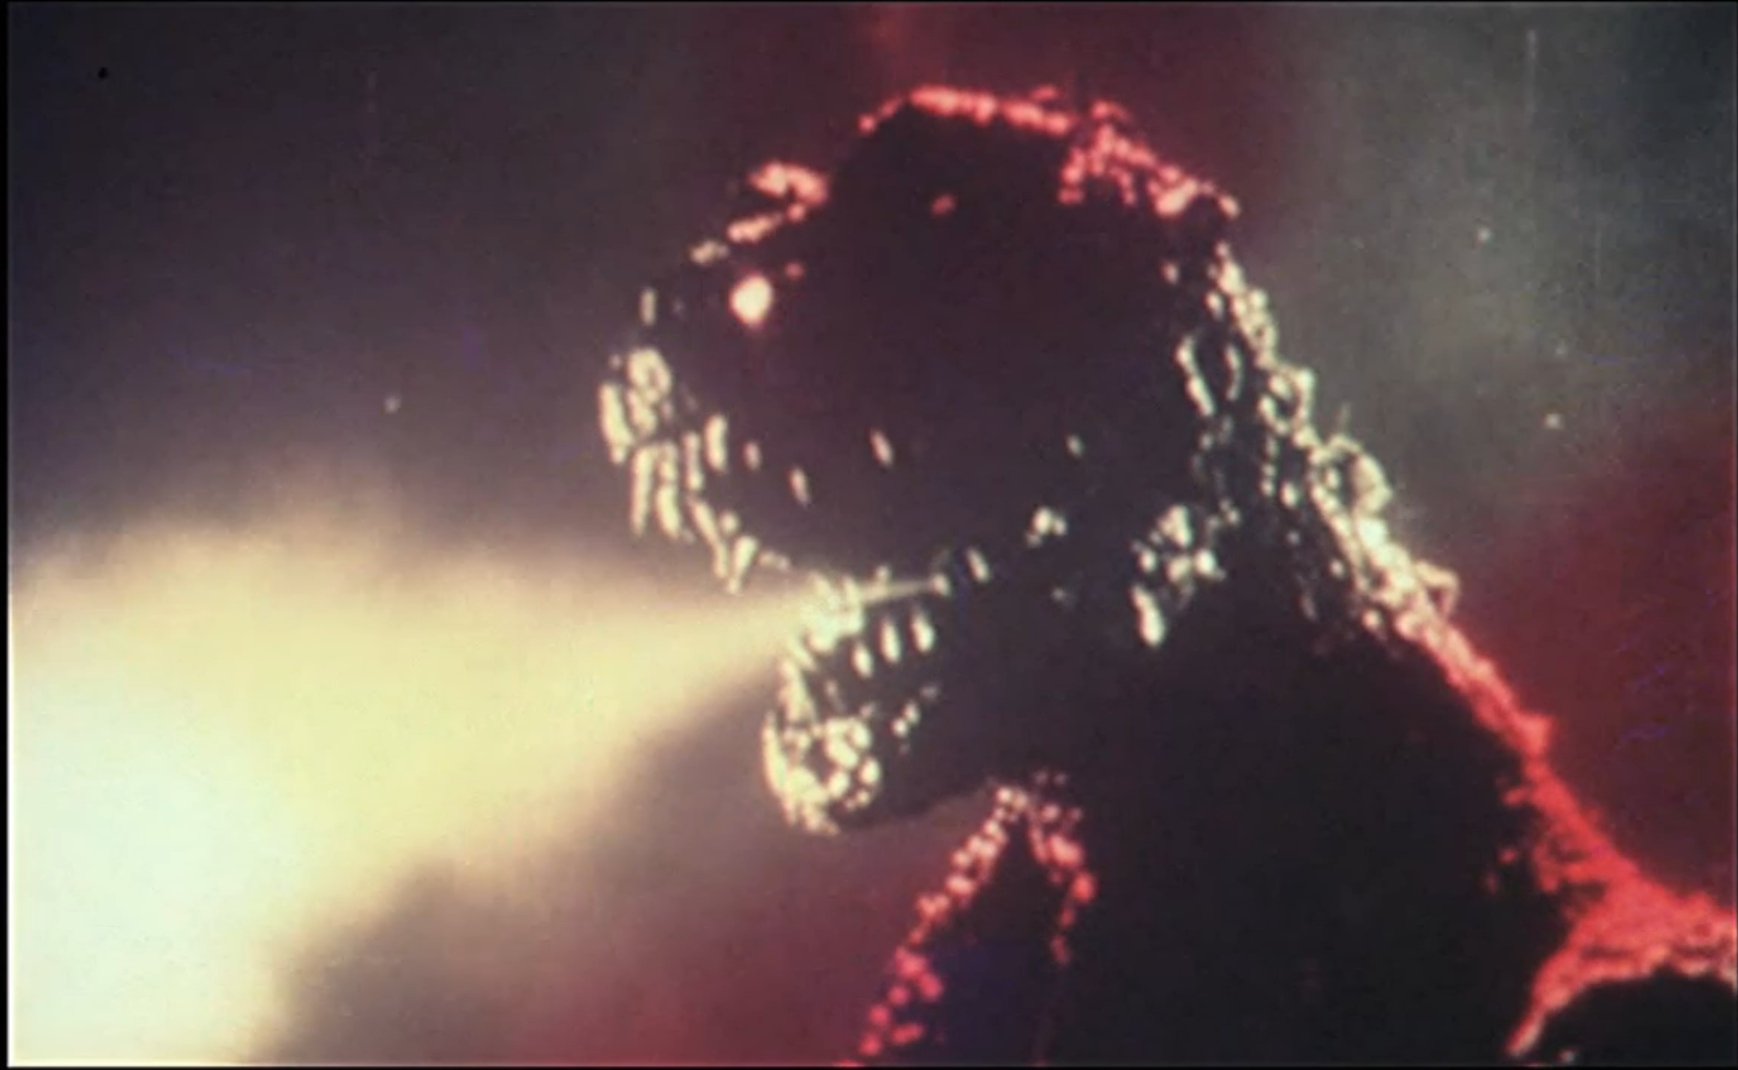 godzilla-cozzilla-screen-capture